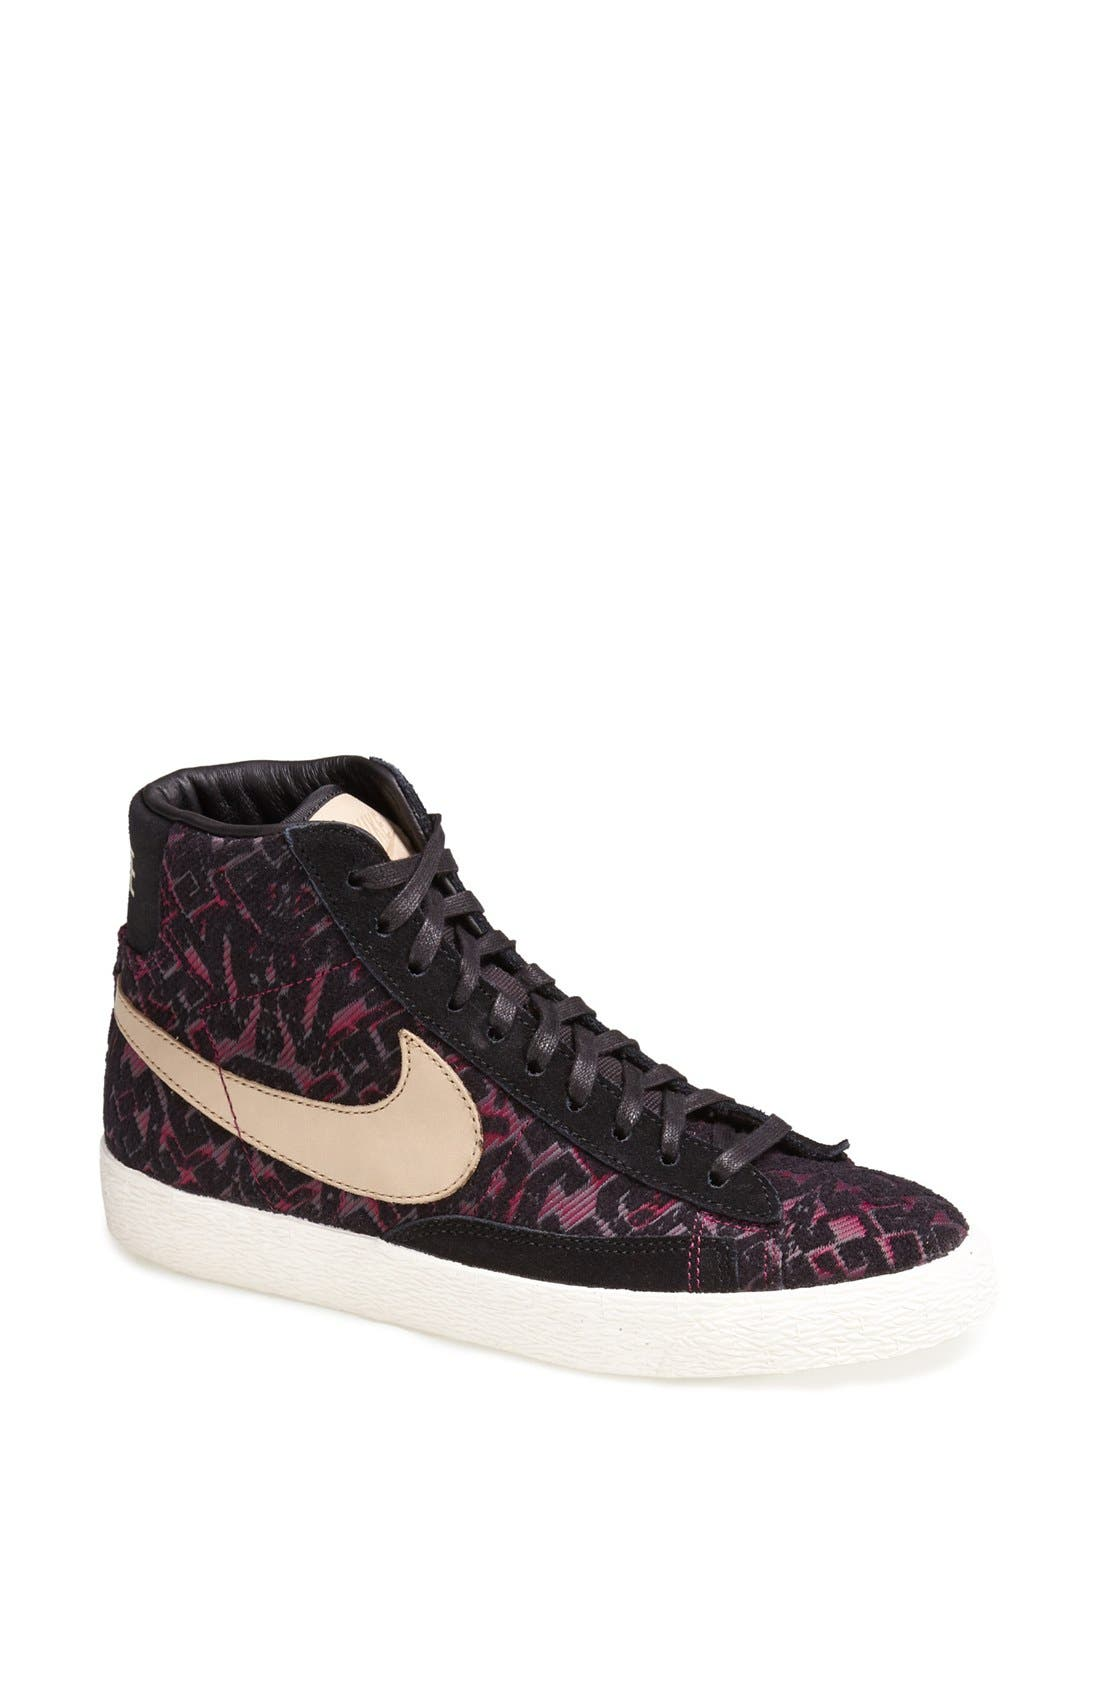 Alternate Image 1 Selected - Nike 'Blazer Mid' Sneaker (Women)